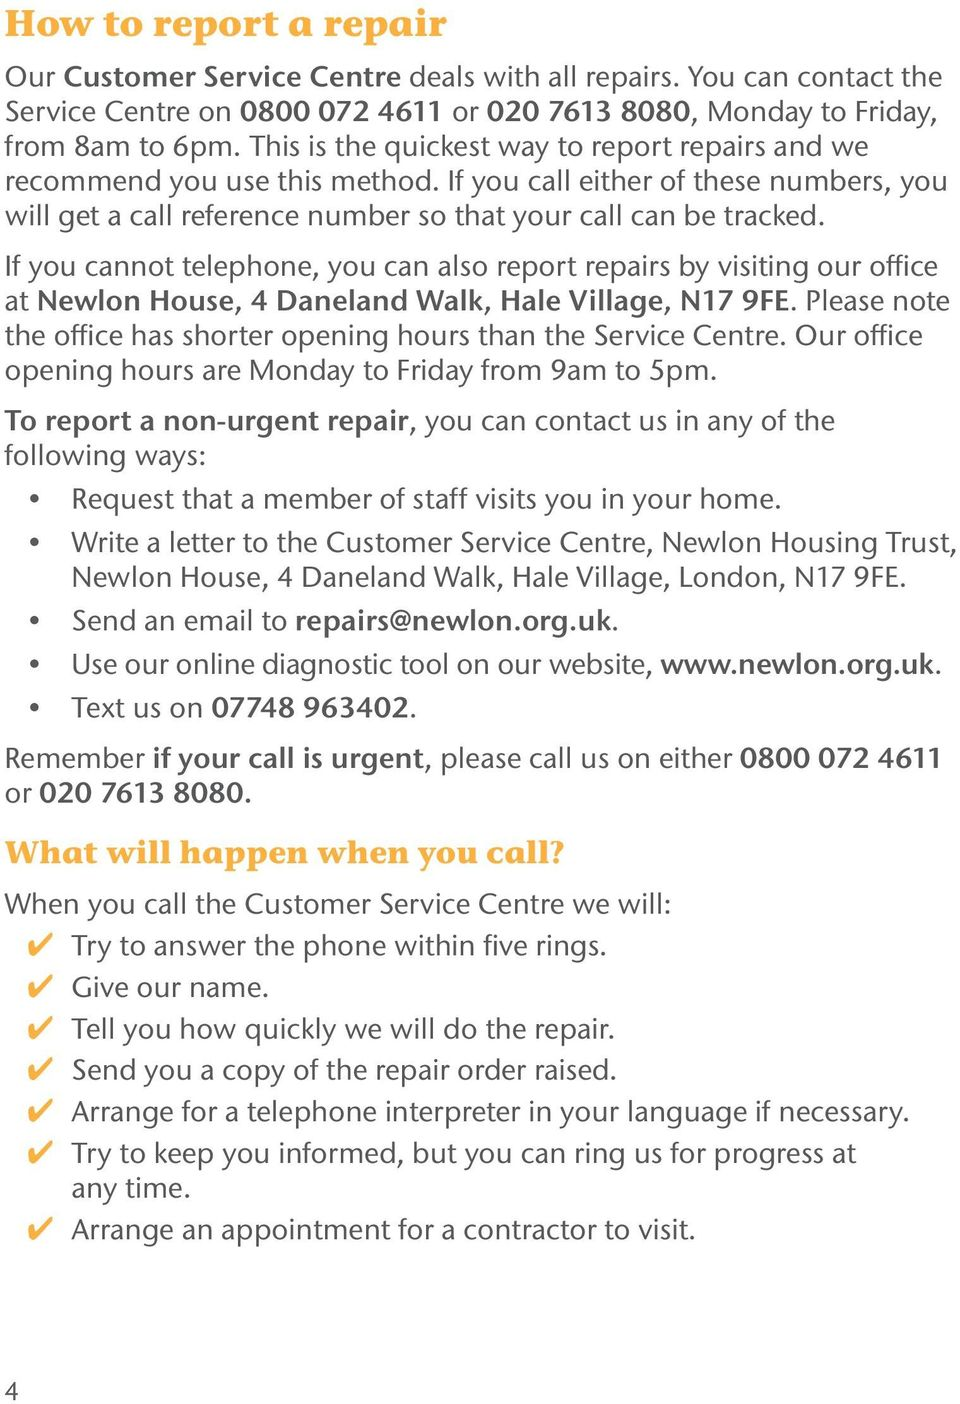 If you cannot telephone, you can also report repairs by visiting our office at Newlon House, 4 Daneland Walk, Hale Village, N17 9FE.